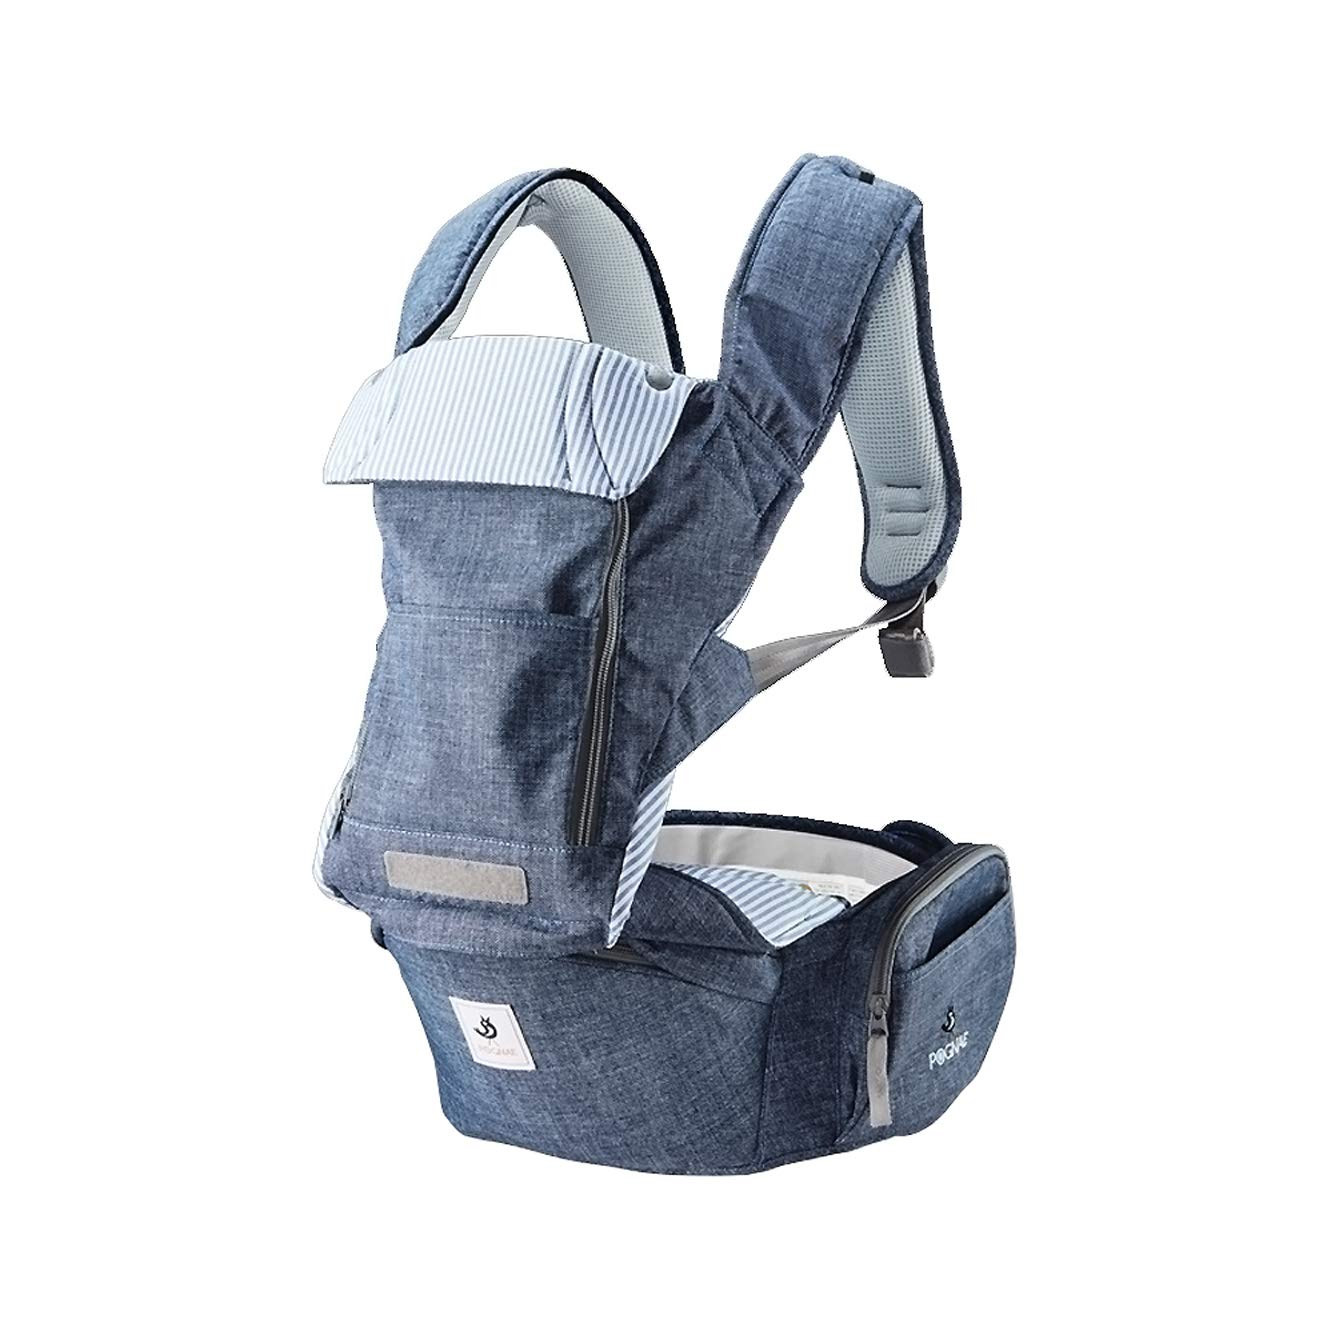 Pognae No 5 Organic Baby Hipseat All in One Carrier Six Position for Infants Babies Toddlers Blue-Melange Denim